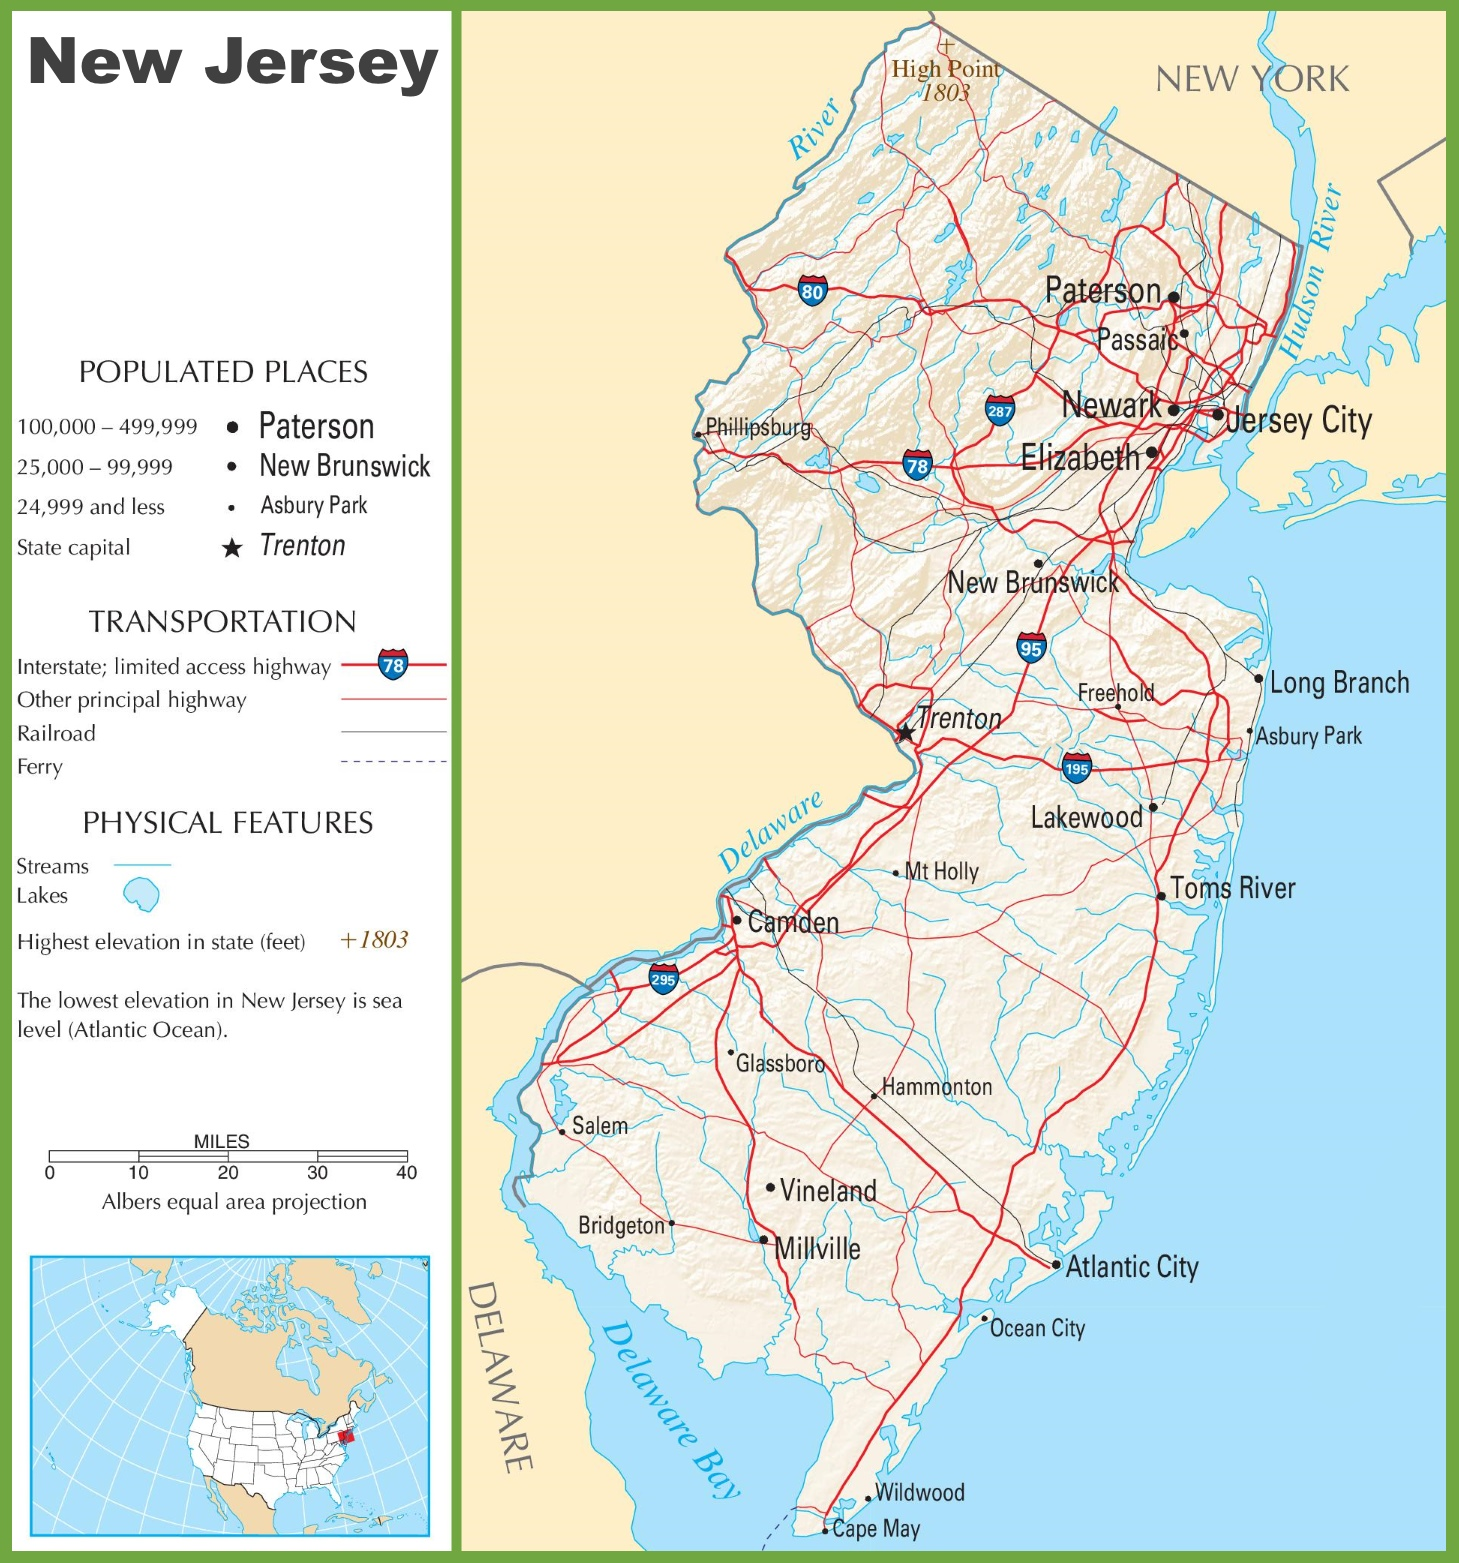 New Jersey Highway Map - New jersey on us map